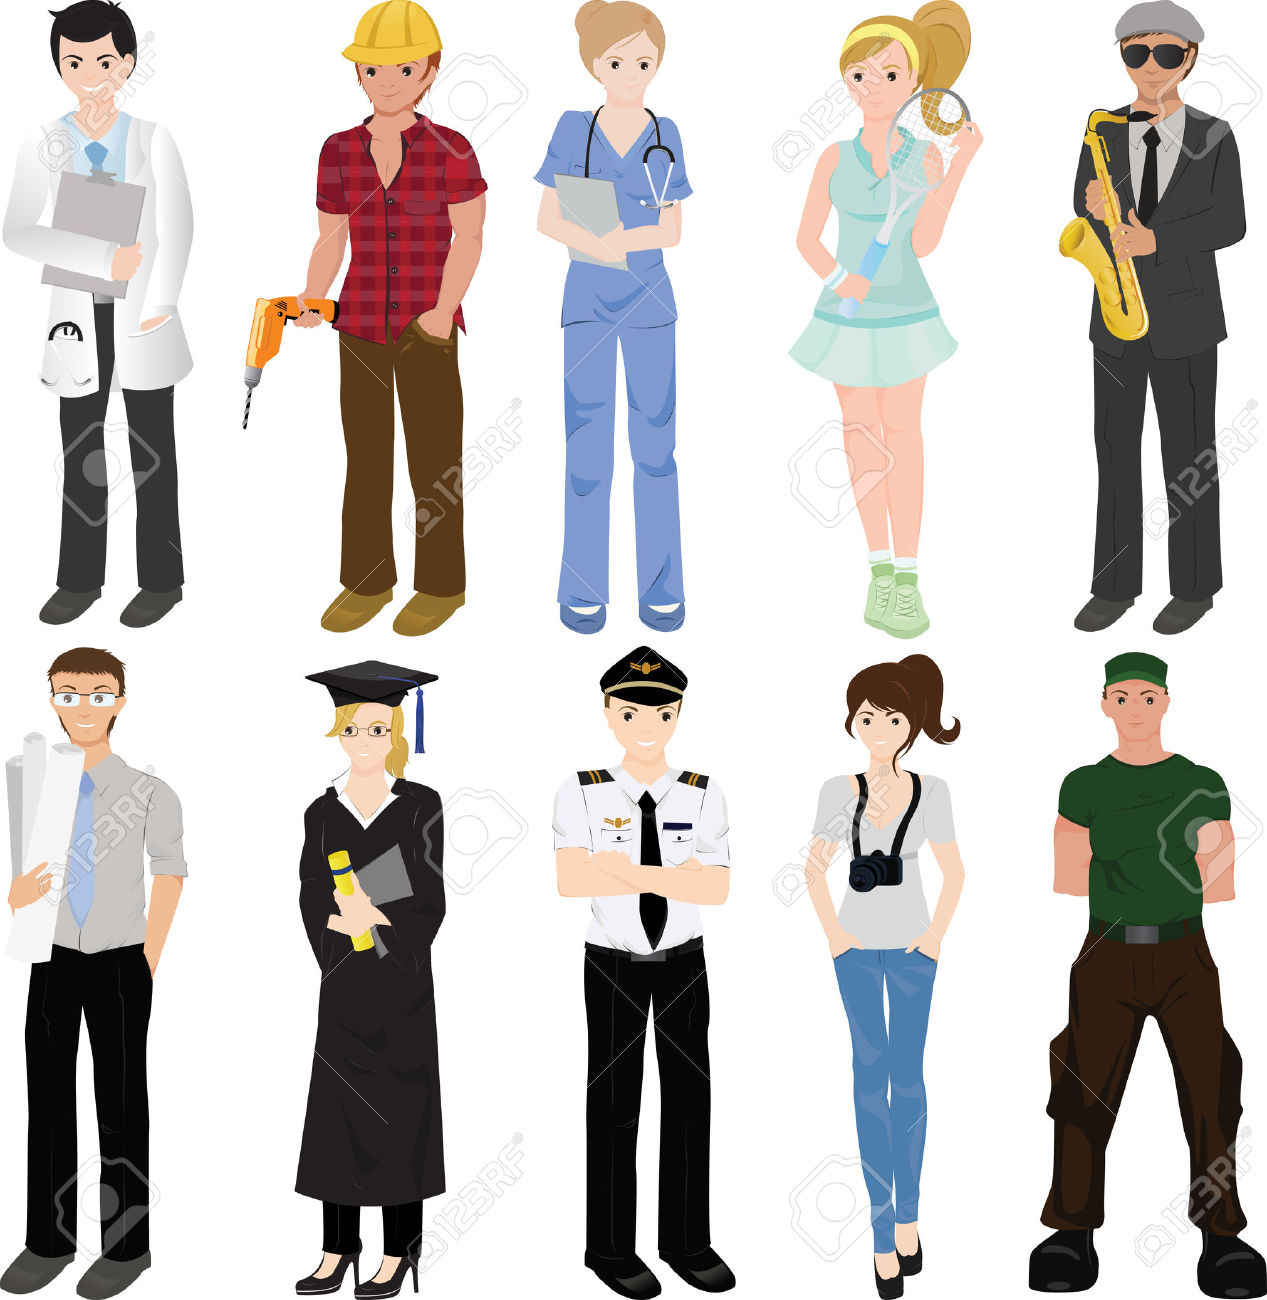 Professionals station . Professional clipart different profession